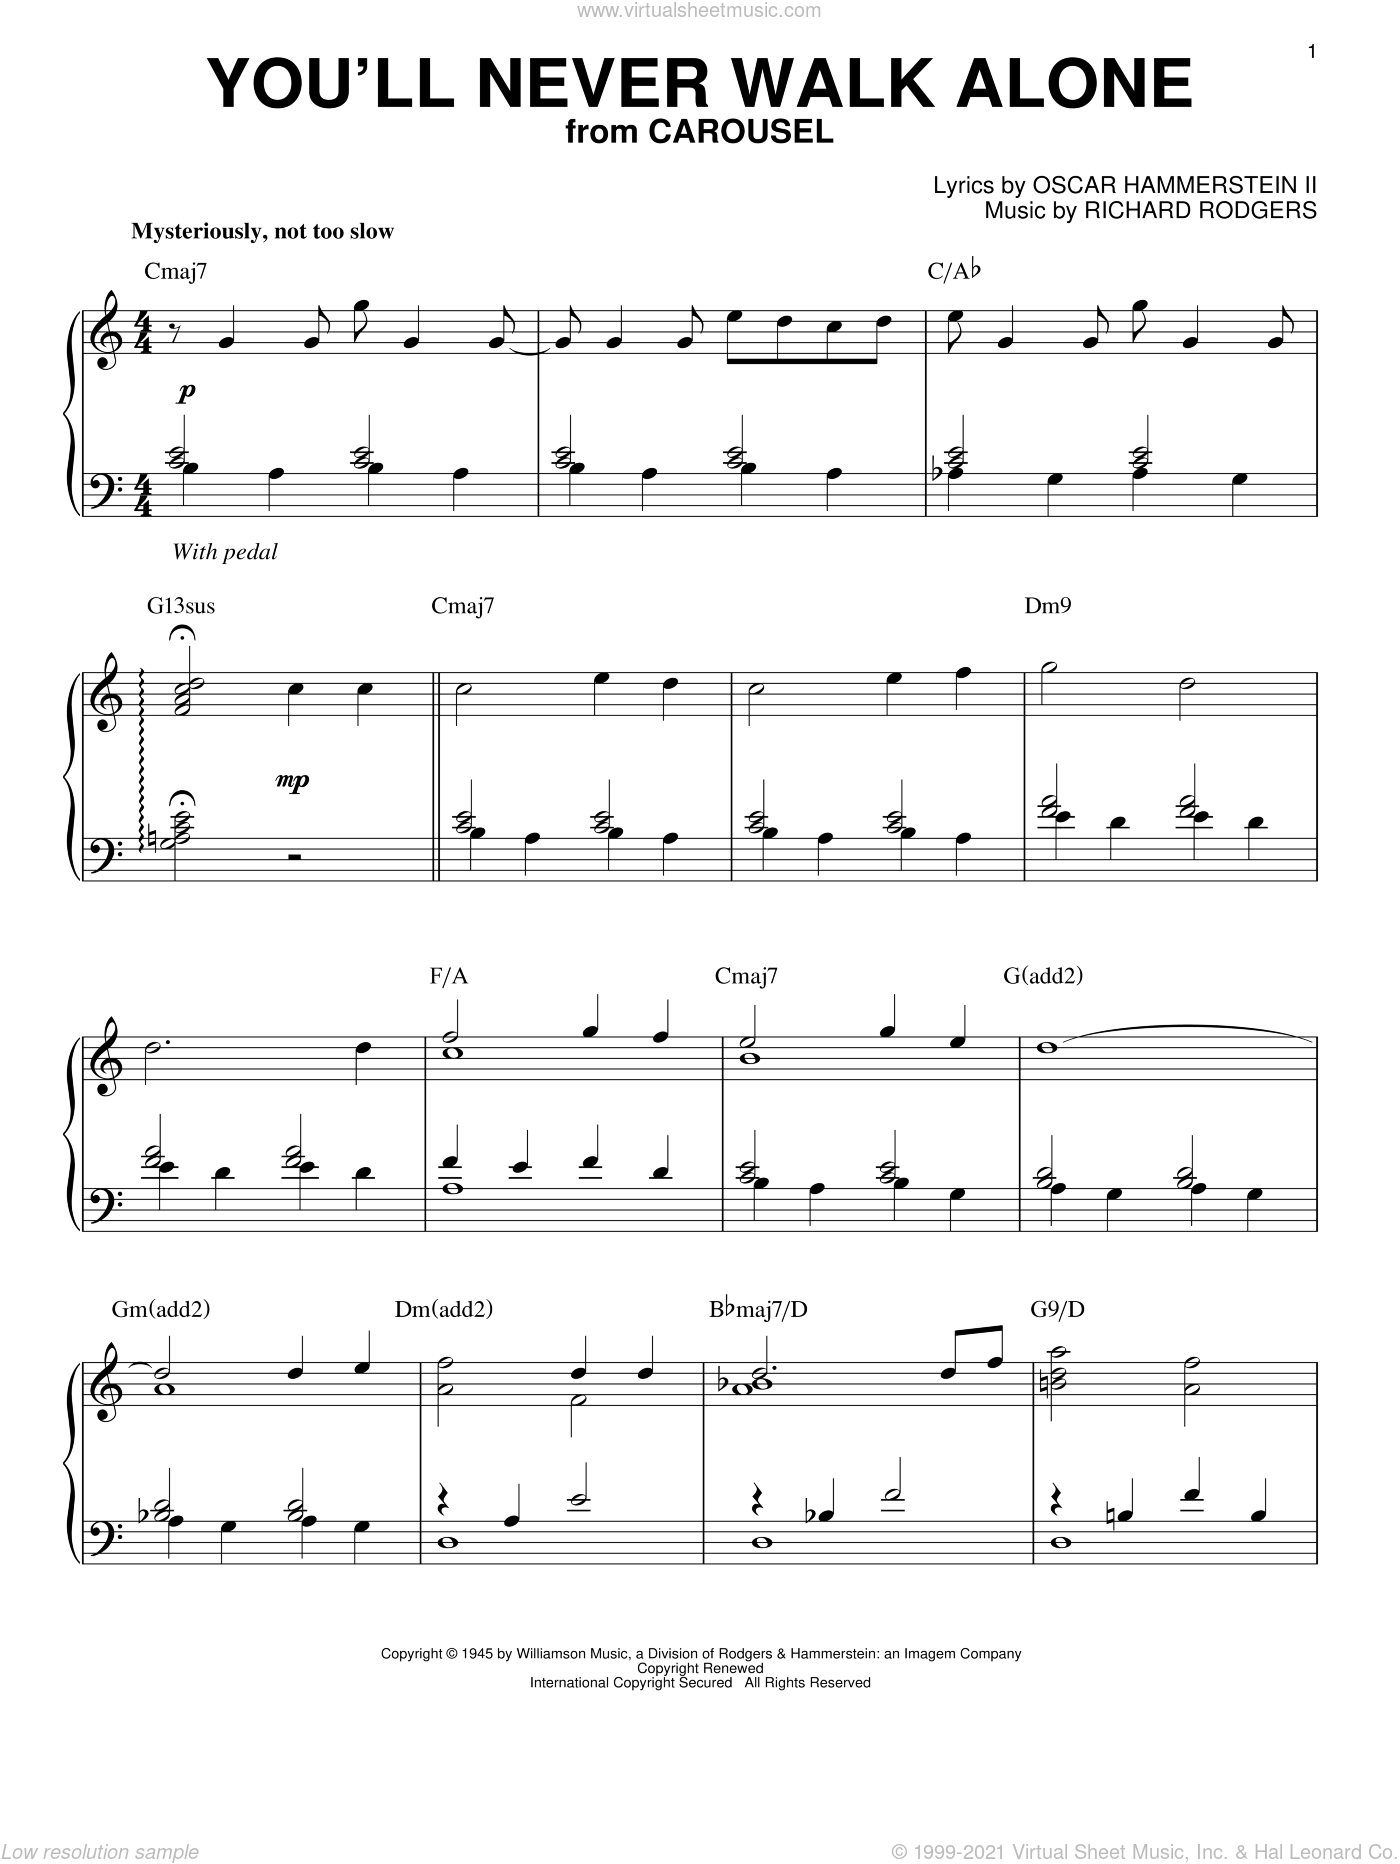 You'll Never Walk Alone [Jazz version] sheet music for piano solo by Rodgers & Hammerstein, Oscar II Hammerstein and Richard Rodgers, intermediate skill level